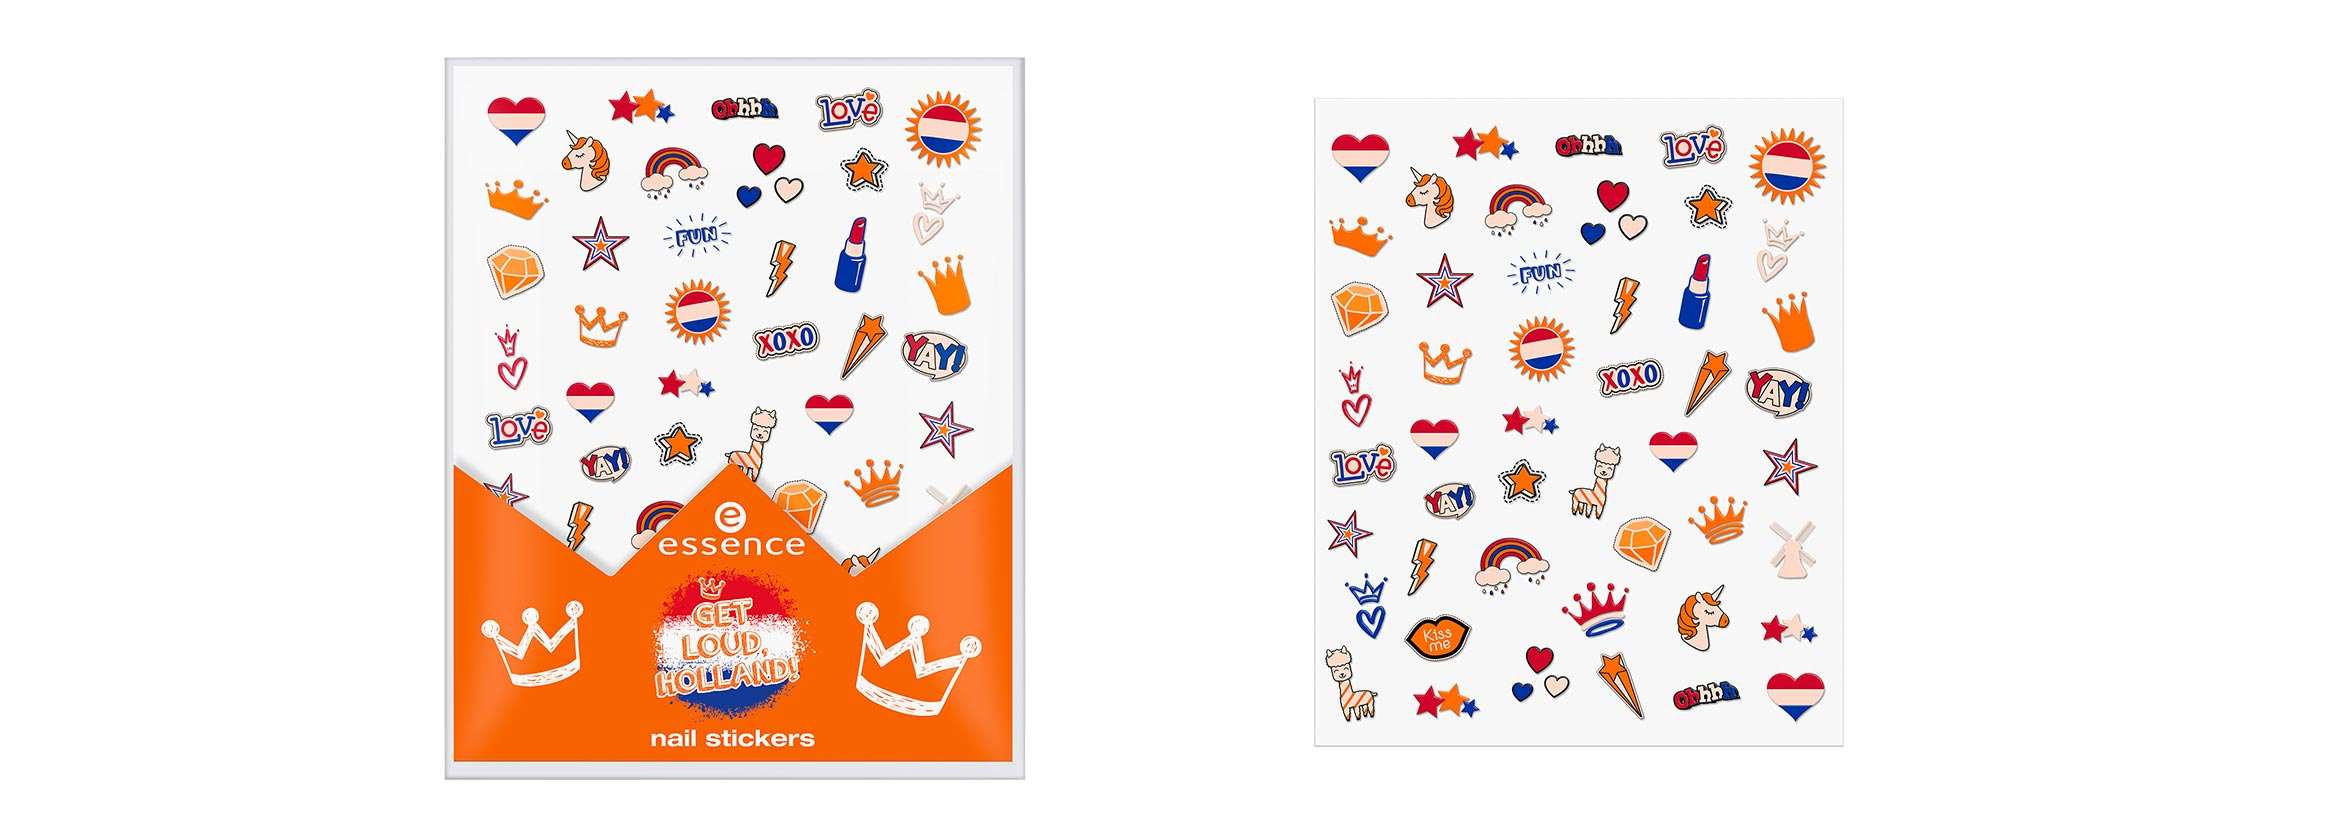 essence-get-loud-holland-nail-stickers-nagelsticker